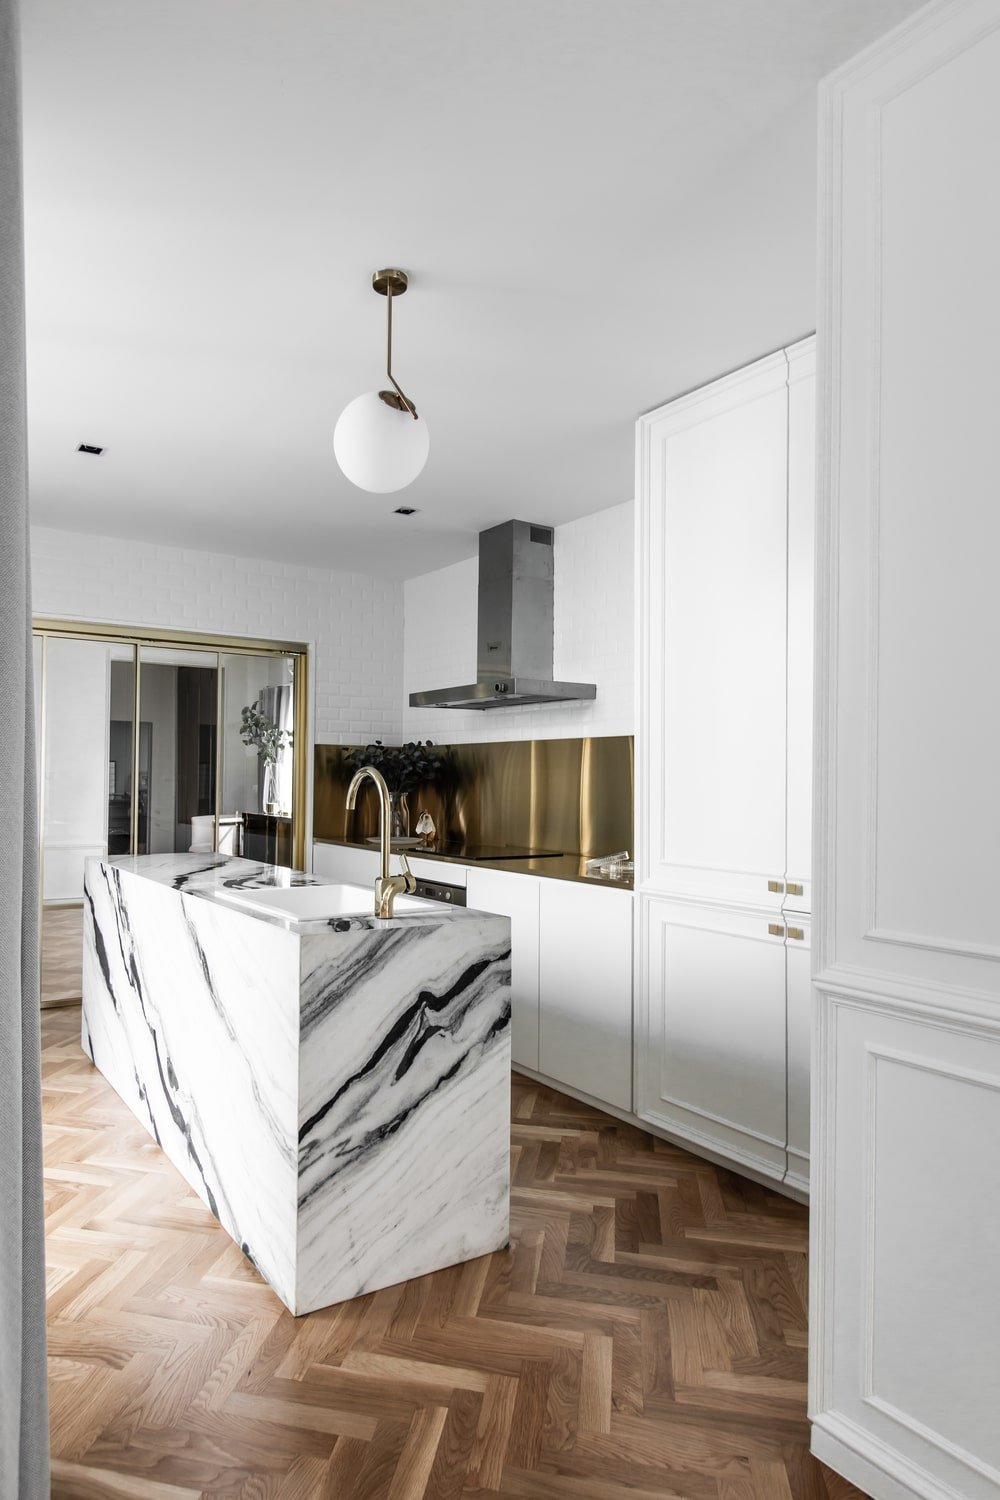 This view showcases the kitchen and its bright white structures contrasted by the herringbone hardwood flooring.